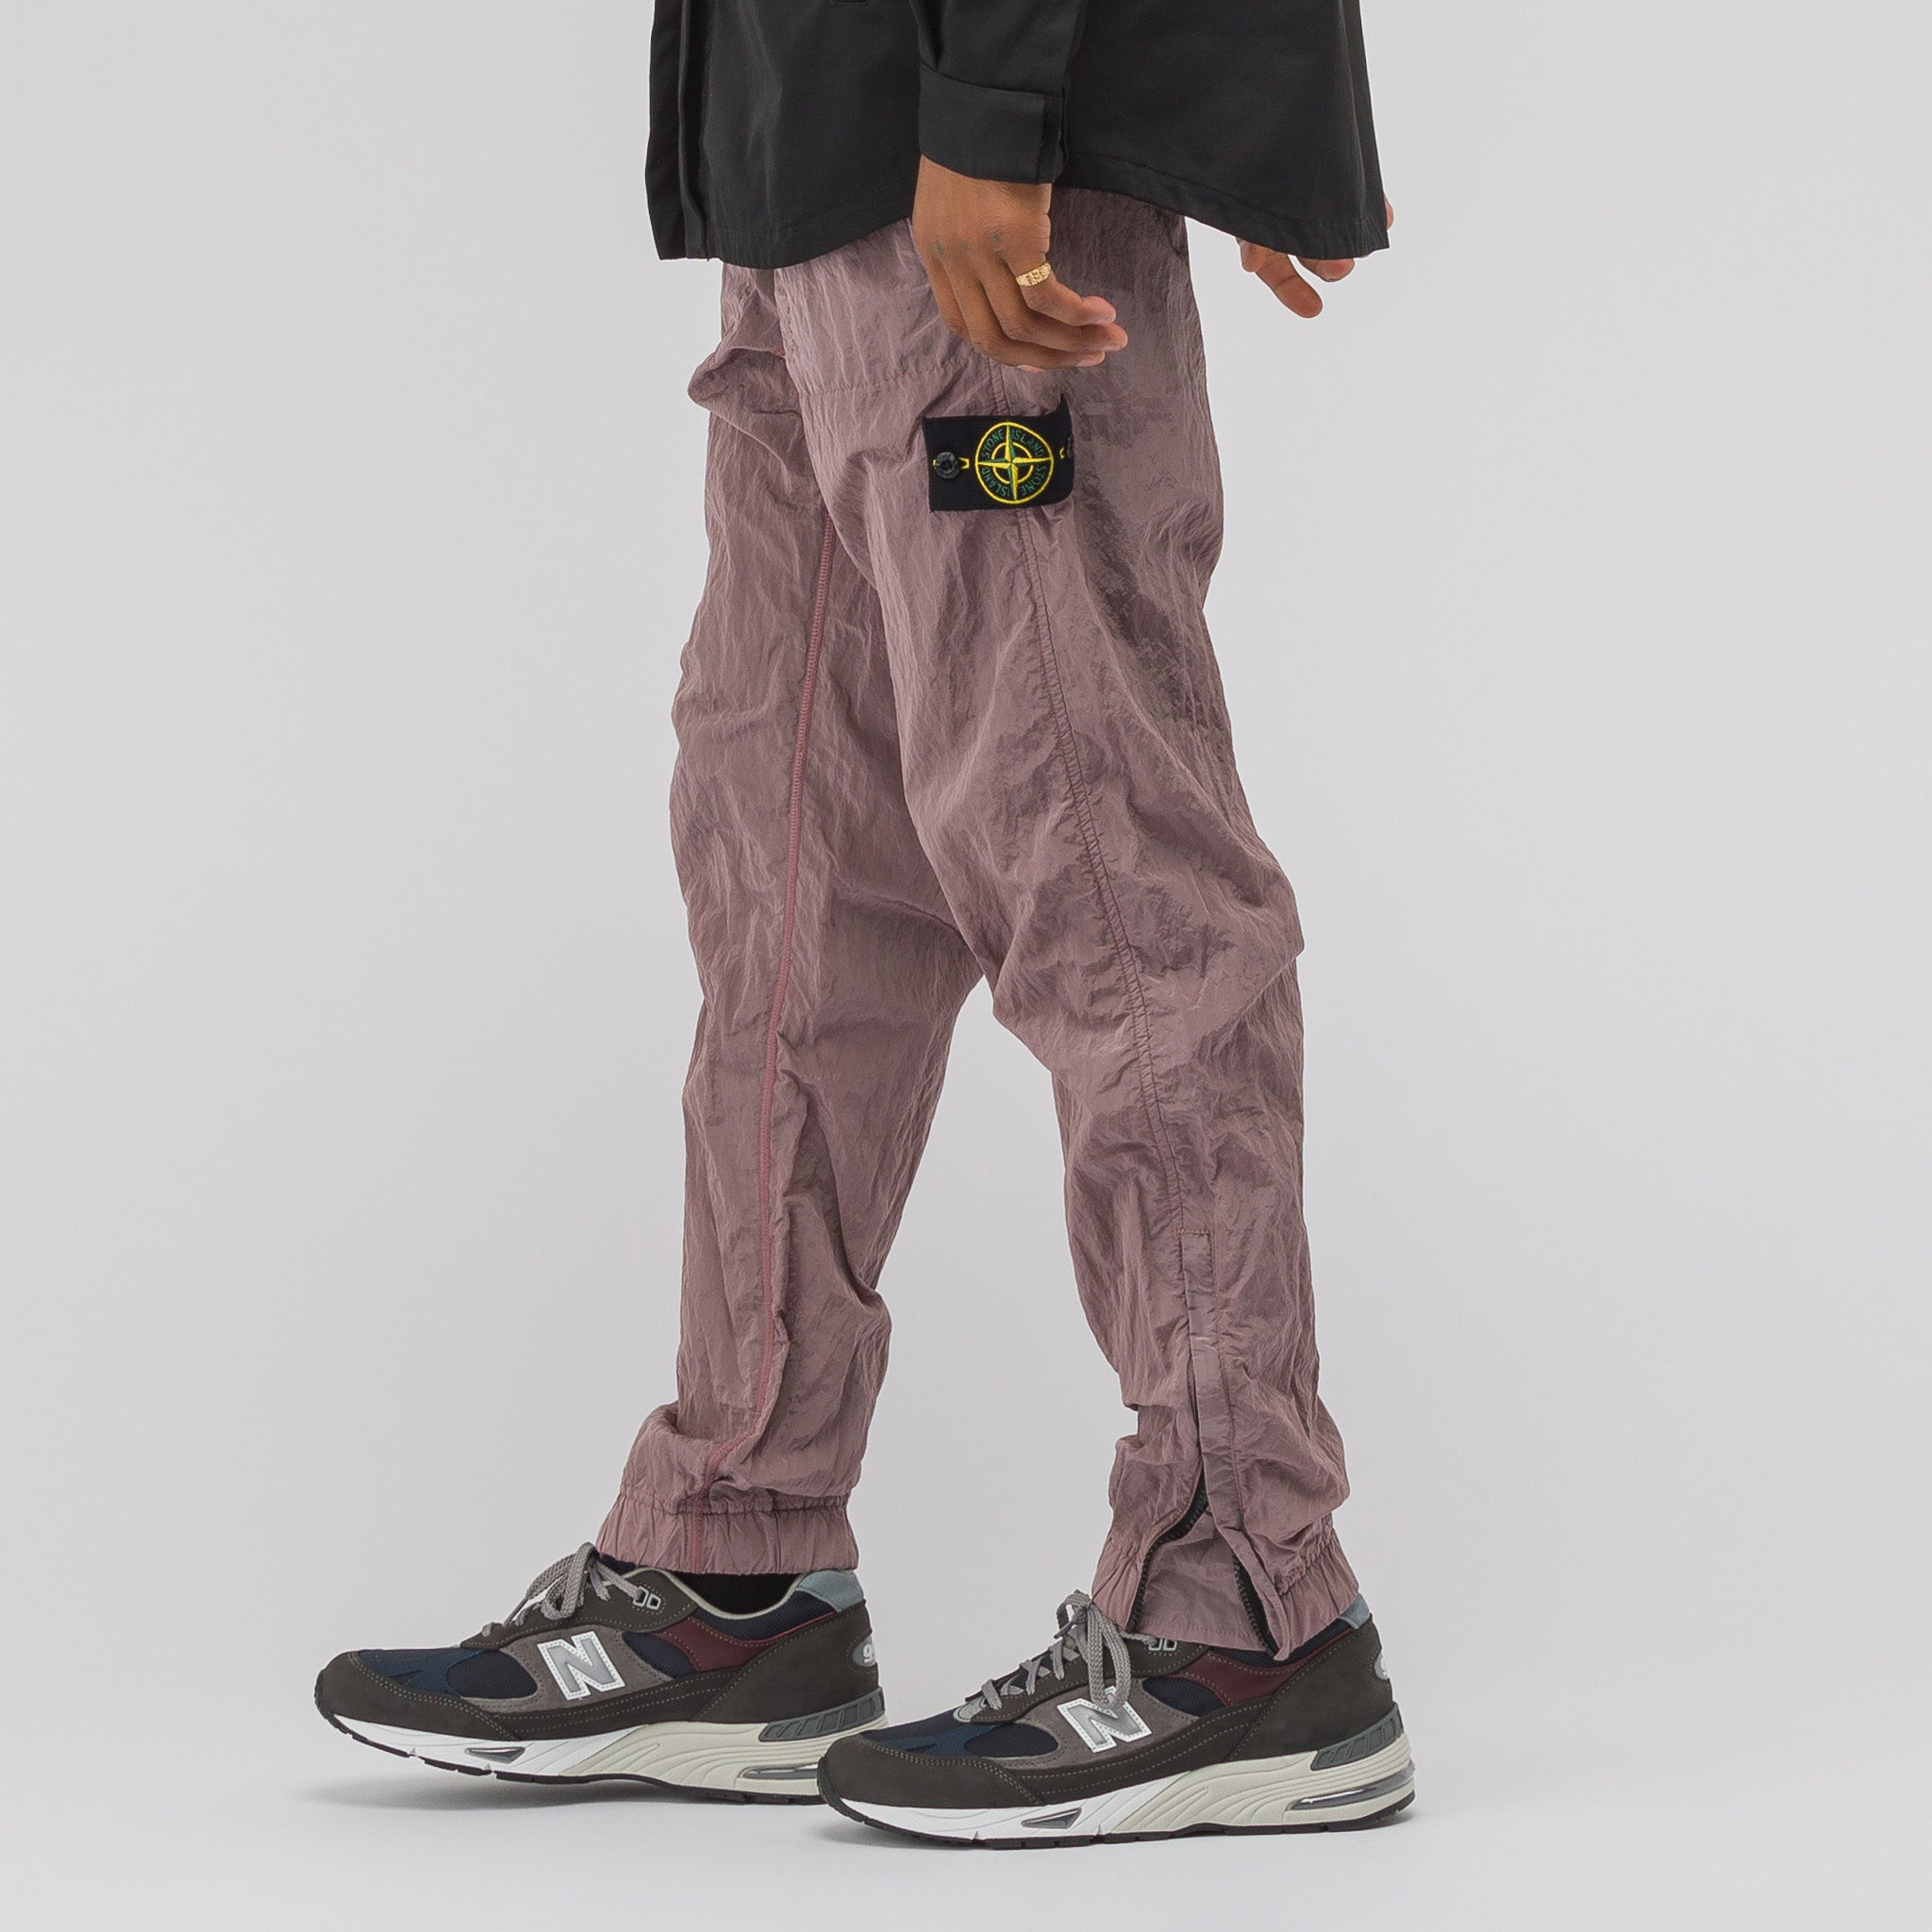 64212 Track Pant in Rose Quartz